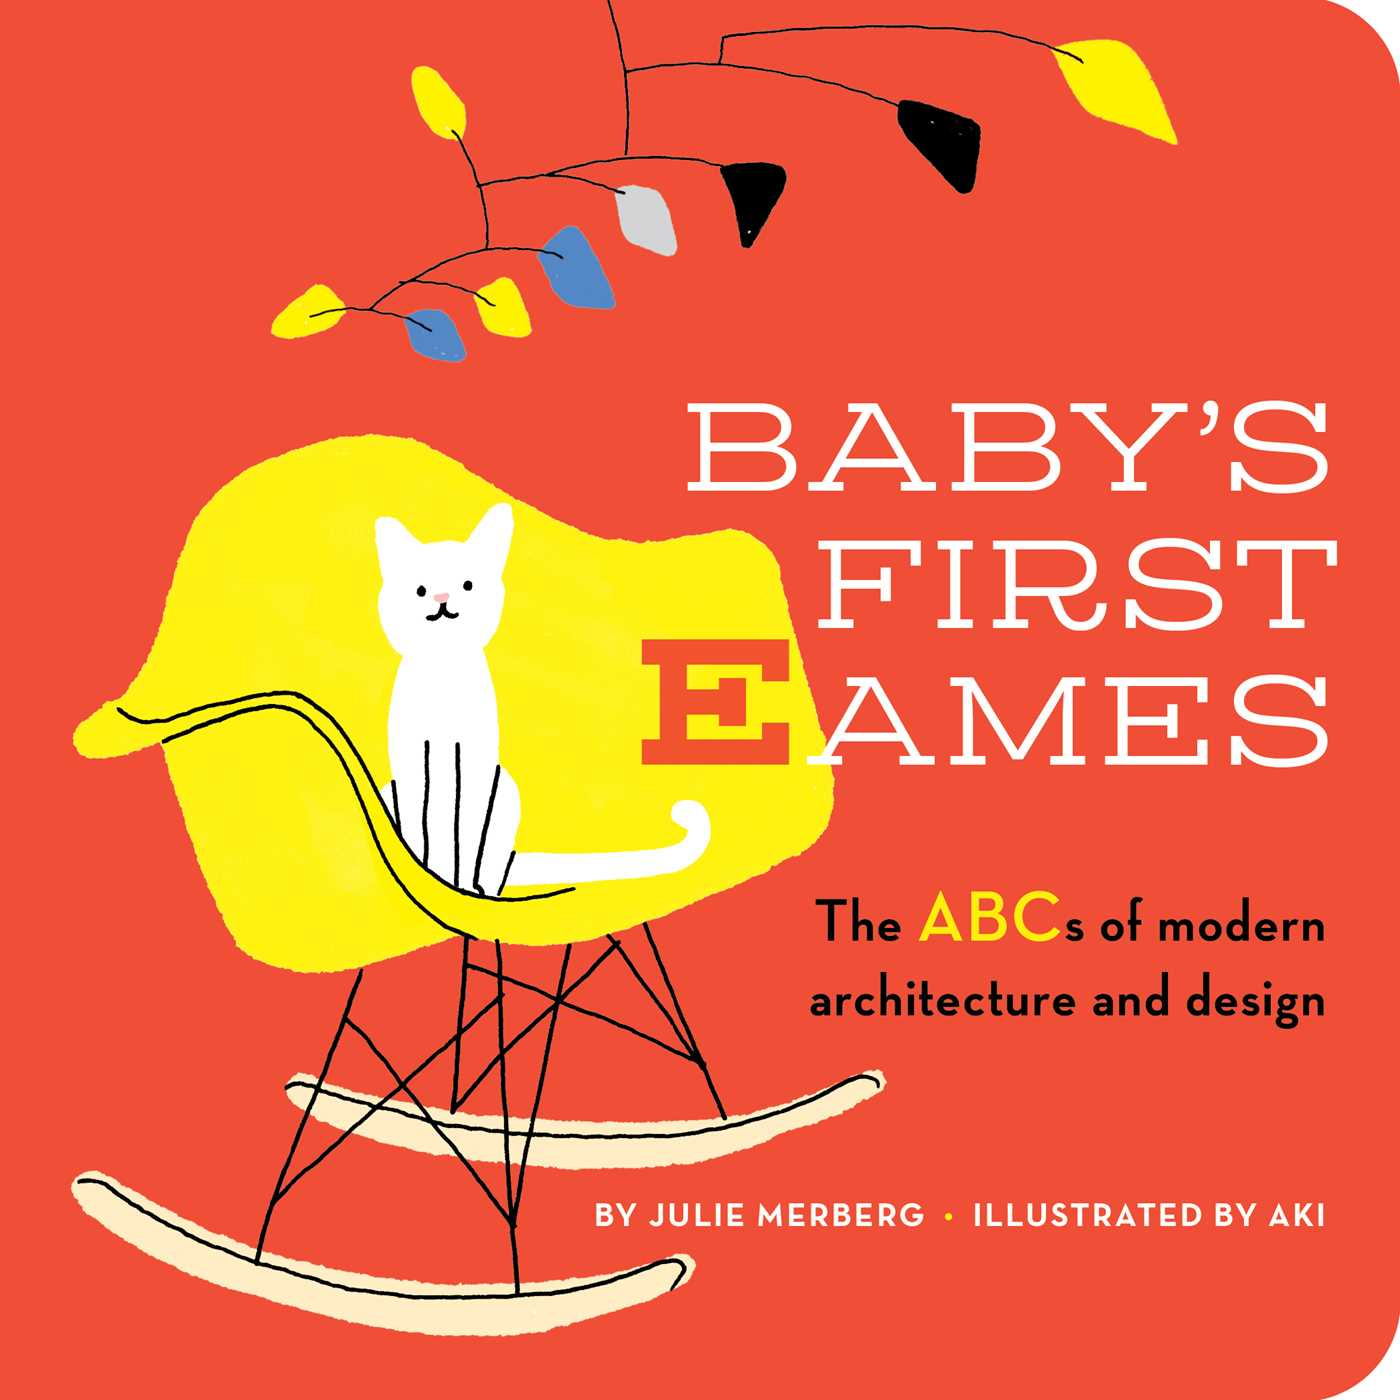 Babys 1st Eames The ABCs of Modern Archi (Board Book)